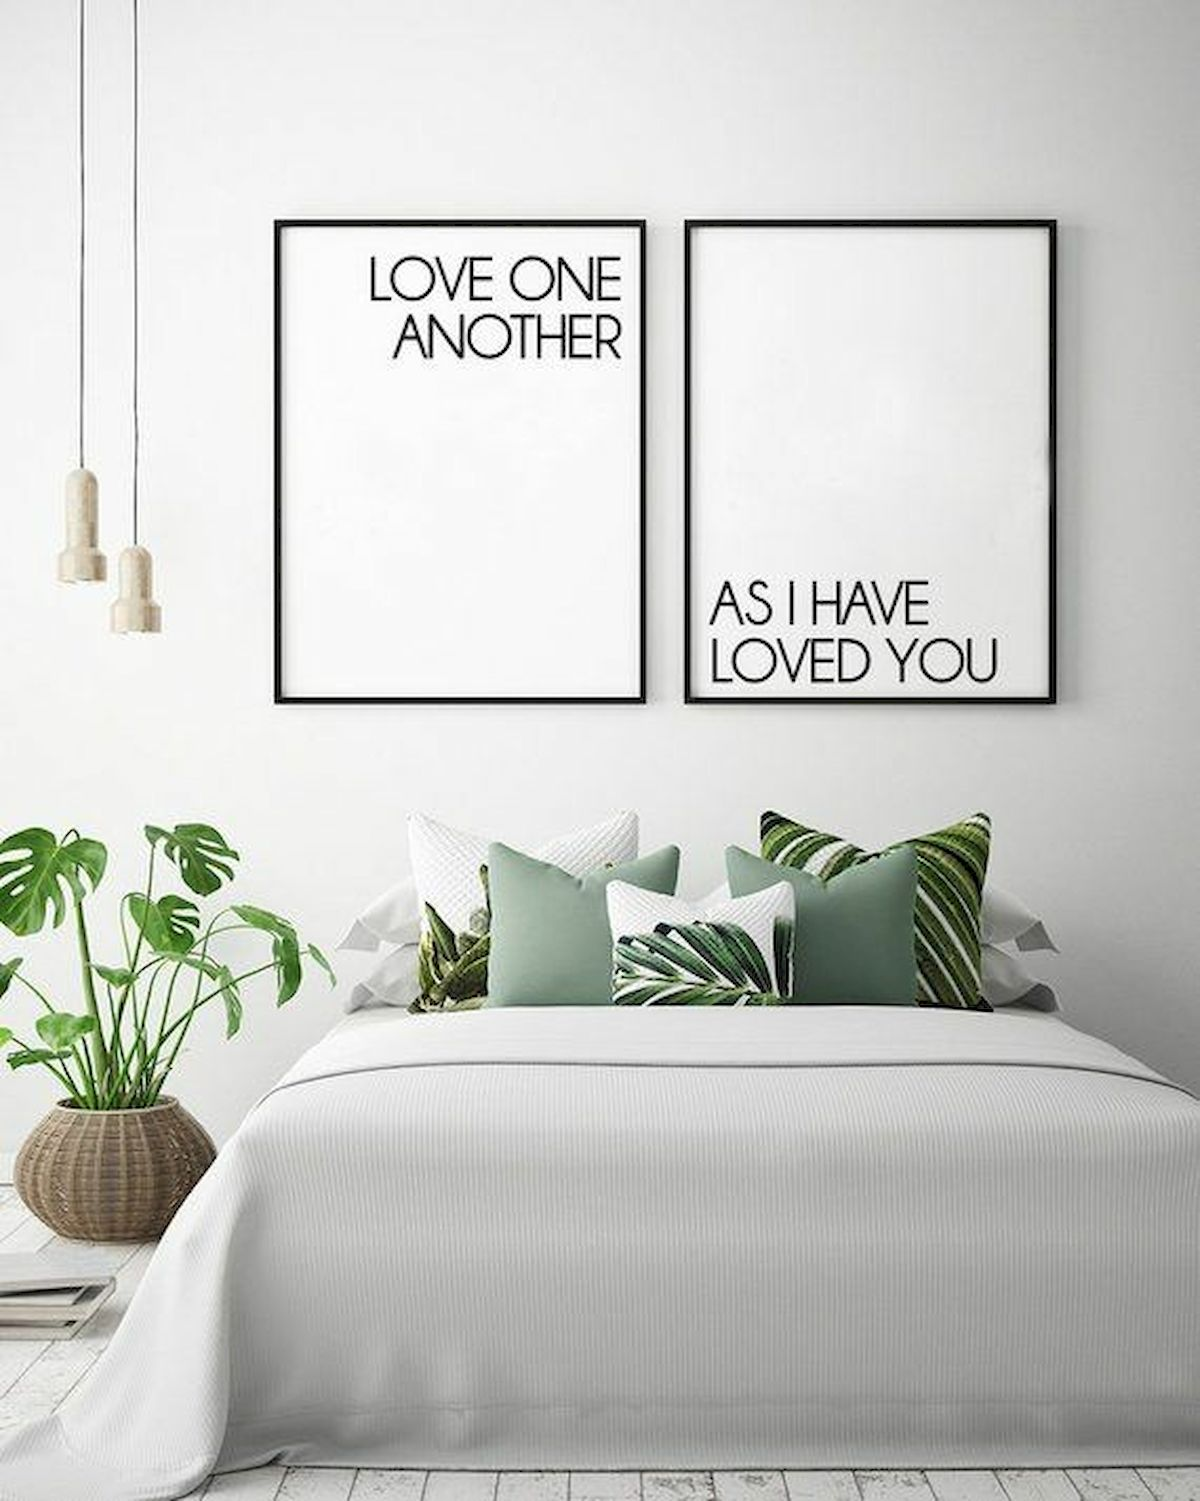 70 Simple Wall Bedroom Decor and Design Ideas (33)